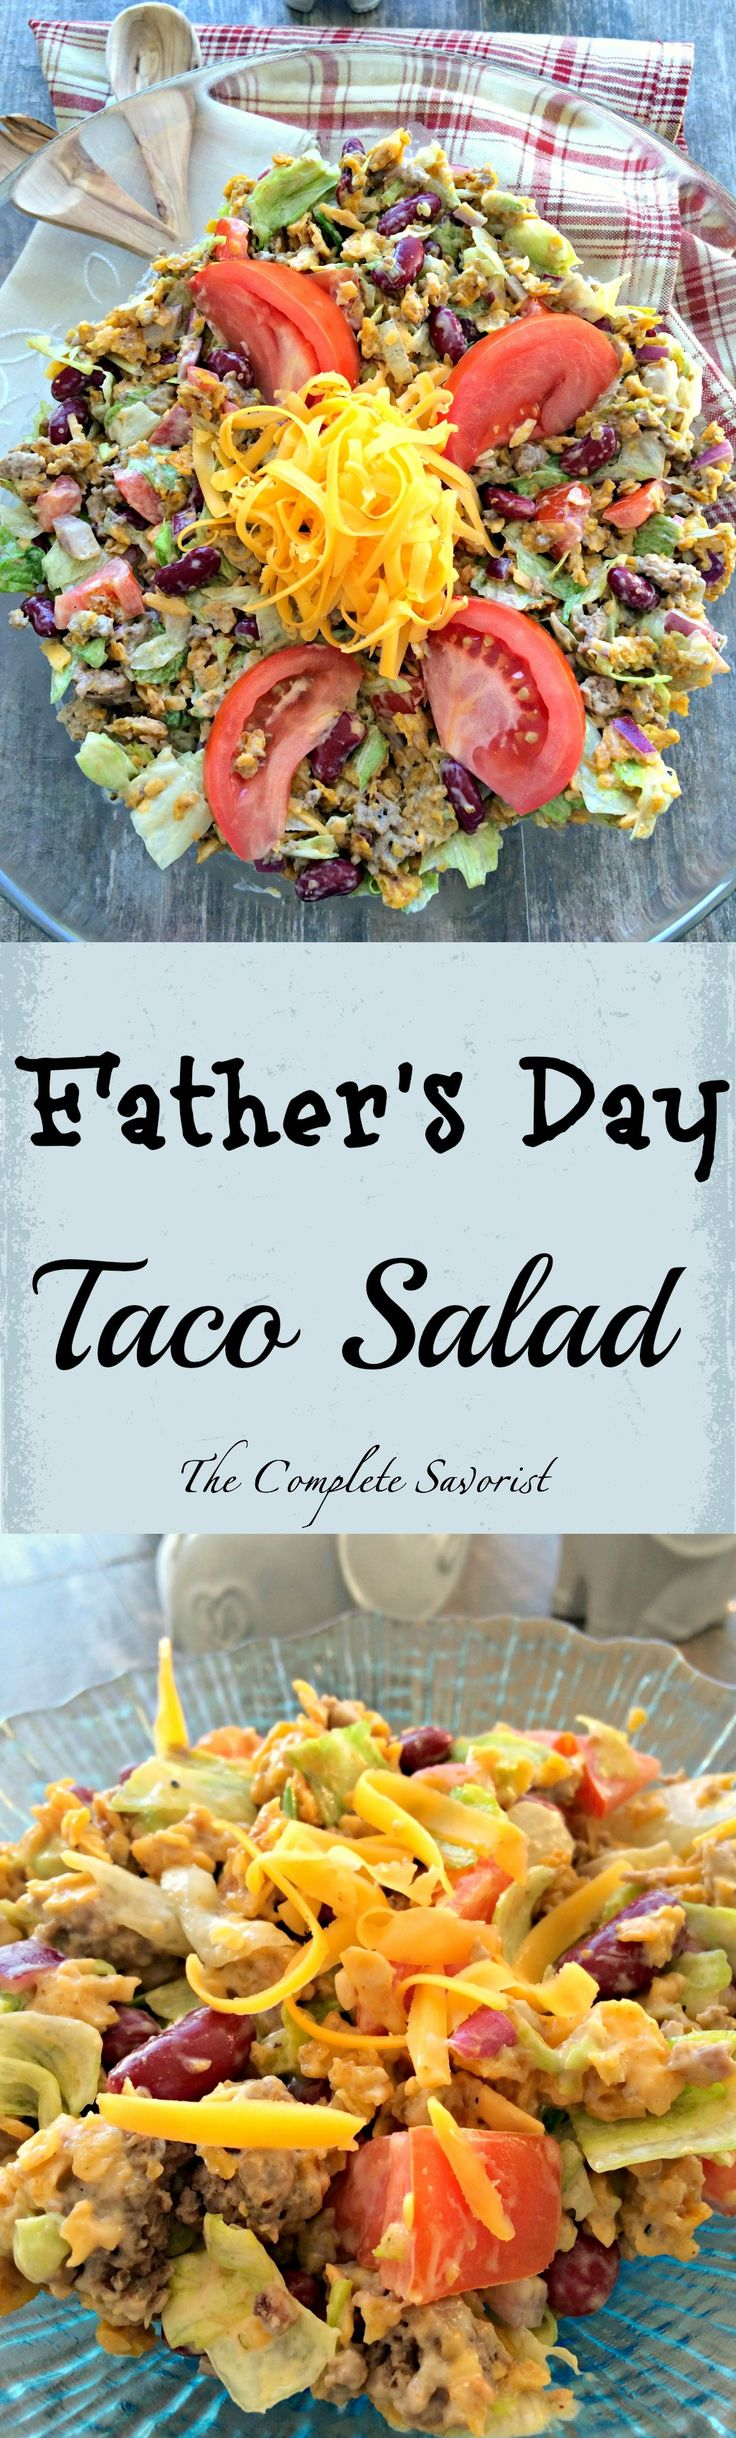 Father's Day Taco Salad ~ Taco salad with Green Goddess dressing and made crunchy with Doritos chips. ~ The Complete Savorist